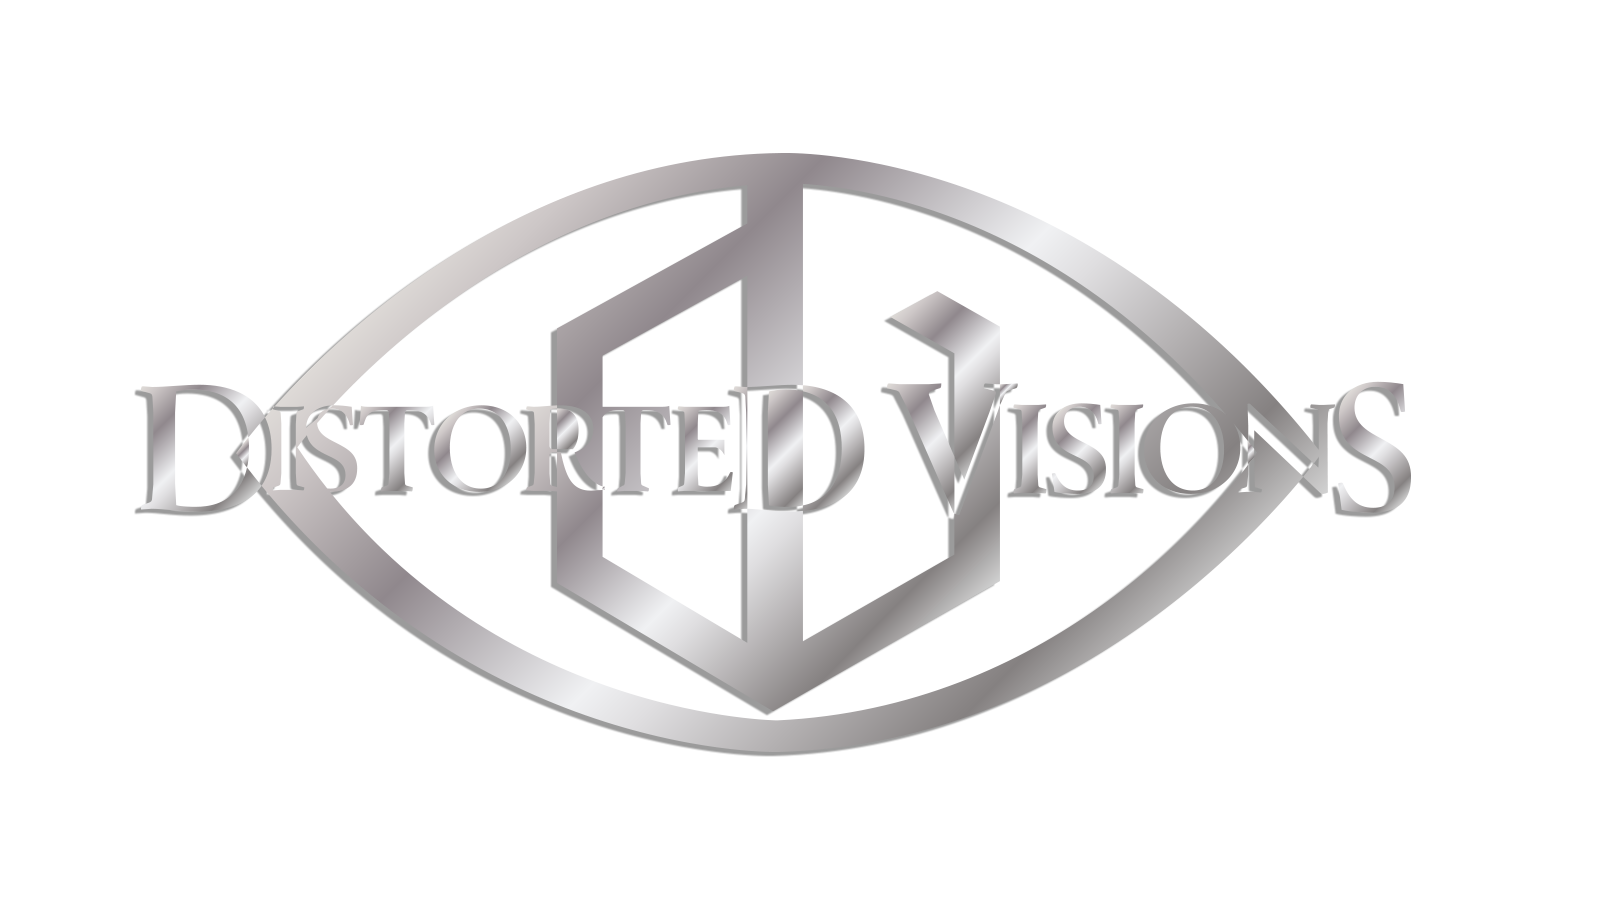 Distorted Visions - logo